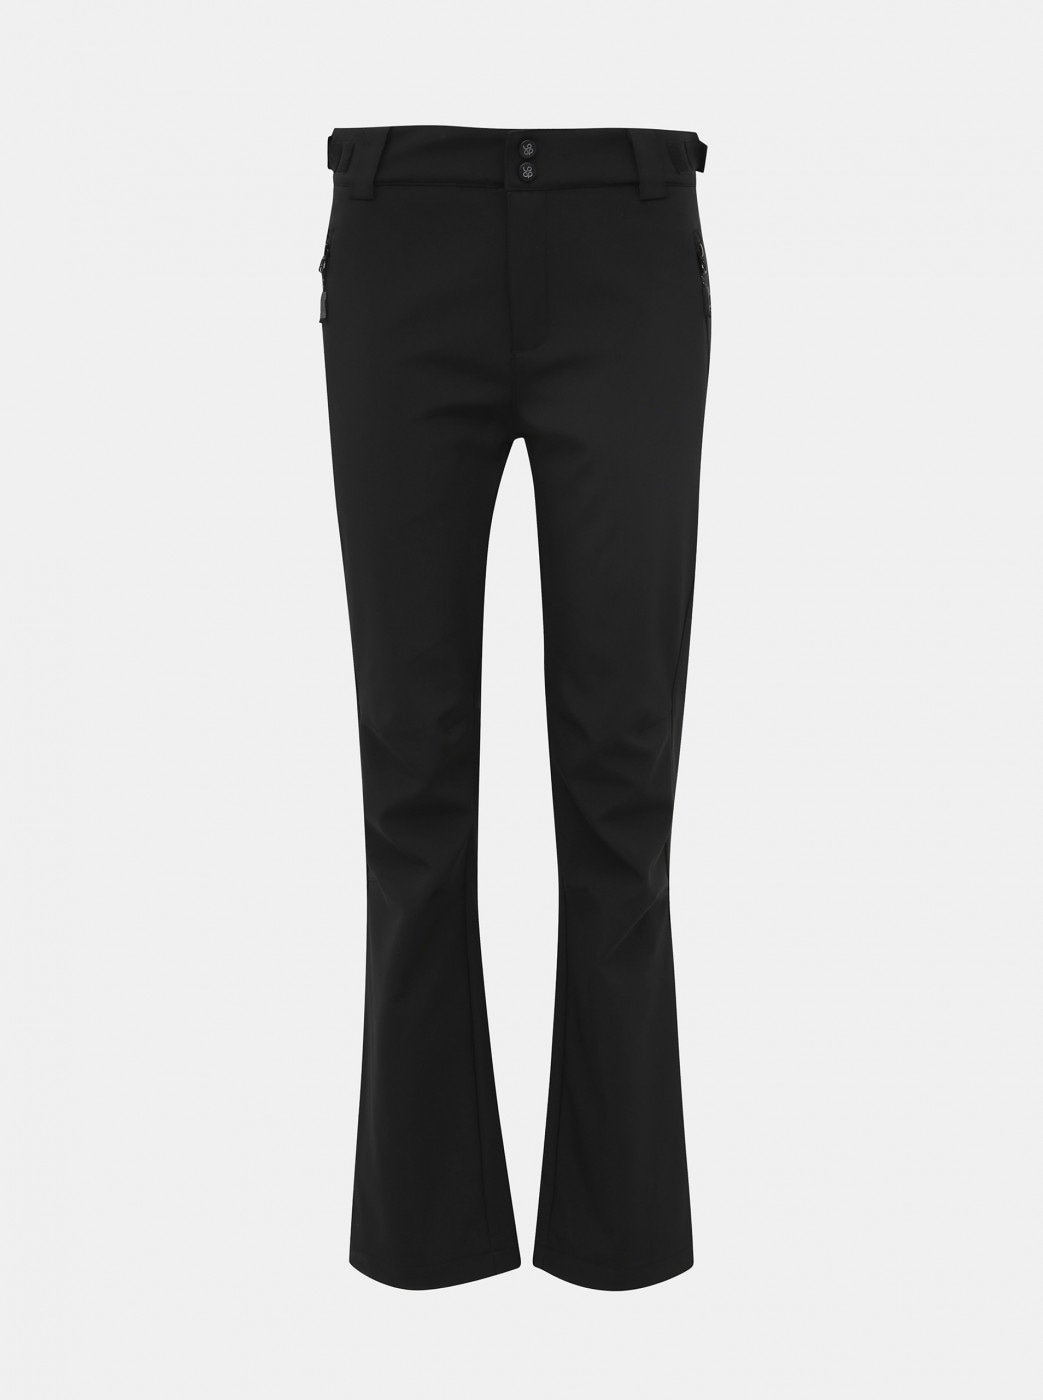 Loap Lycci Black Women's Softshell Functional Pants